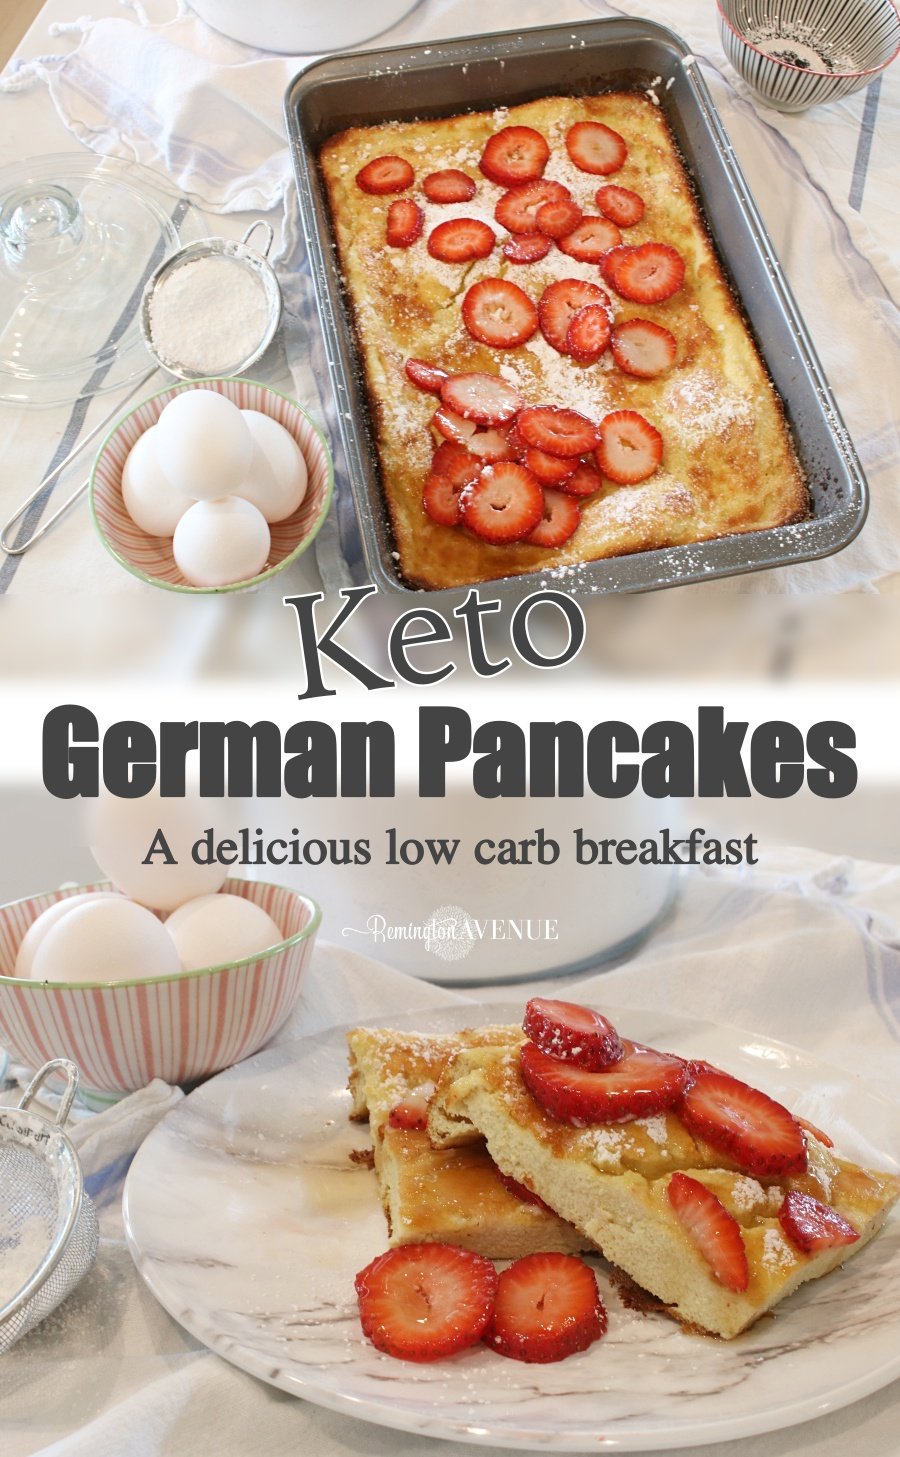 German Pancakes - Low Carb Recipe